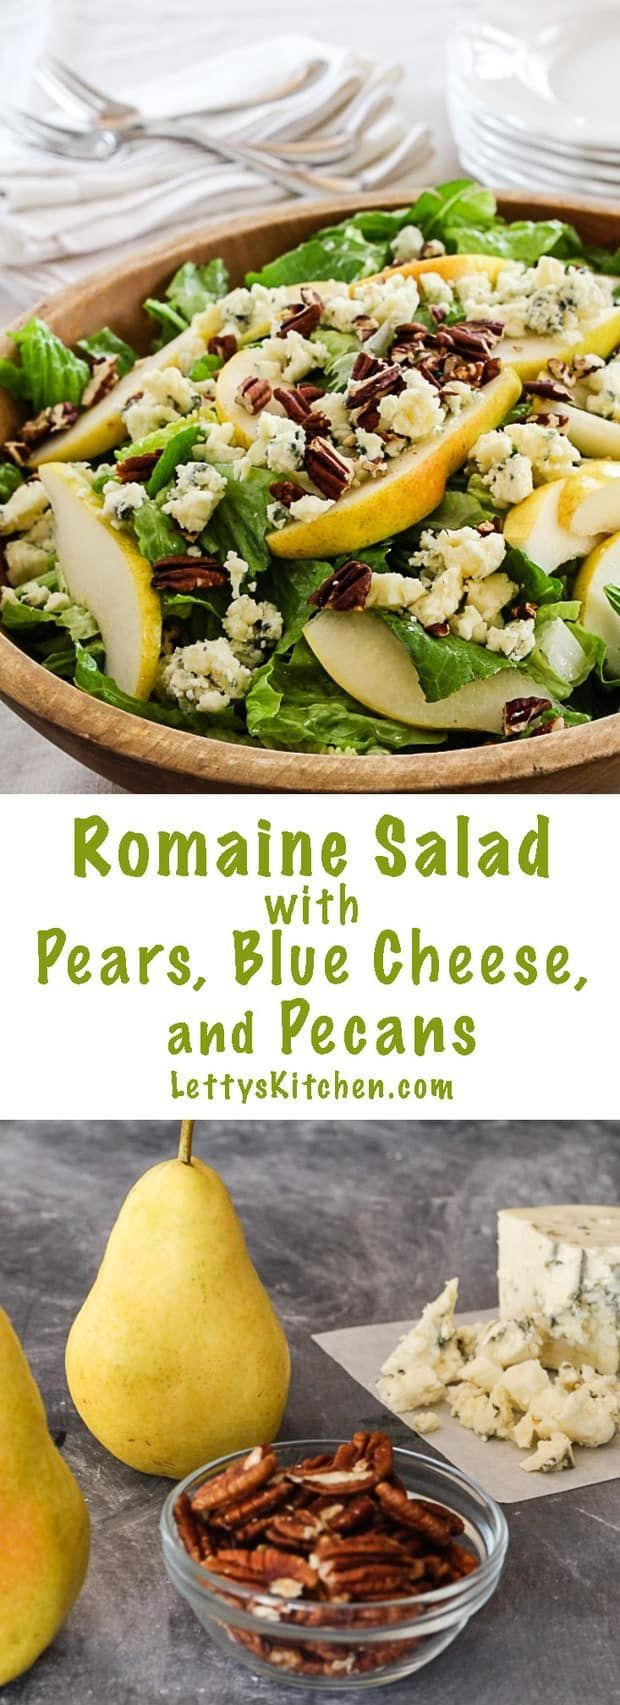 Romaine Salad with Pears, Blue Cheese and Pecans via @lettyskitchen